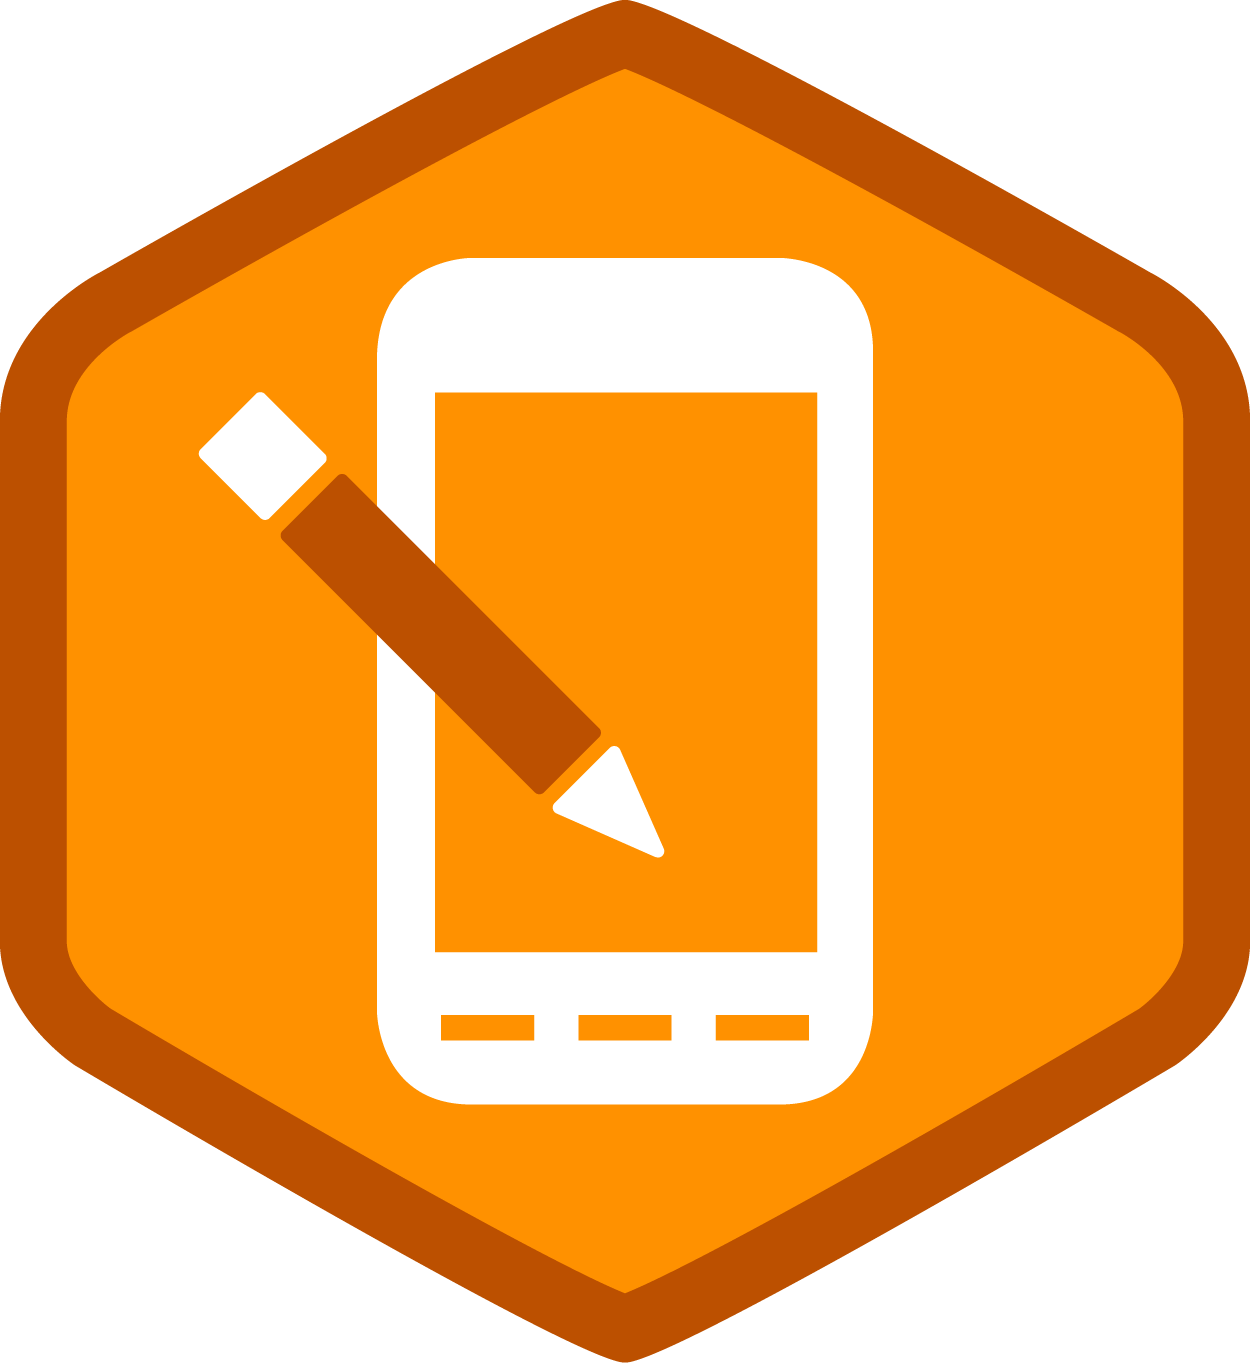 Styles and Themes in Android course image